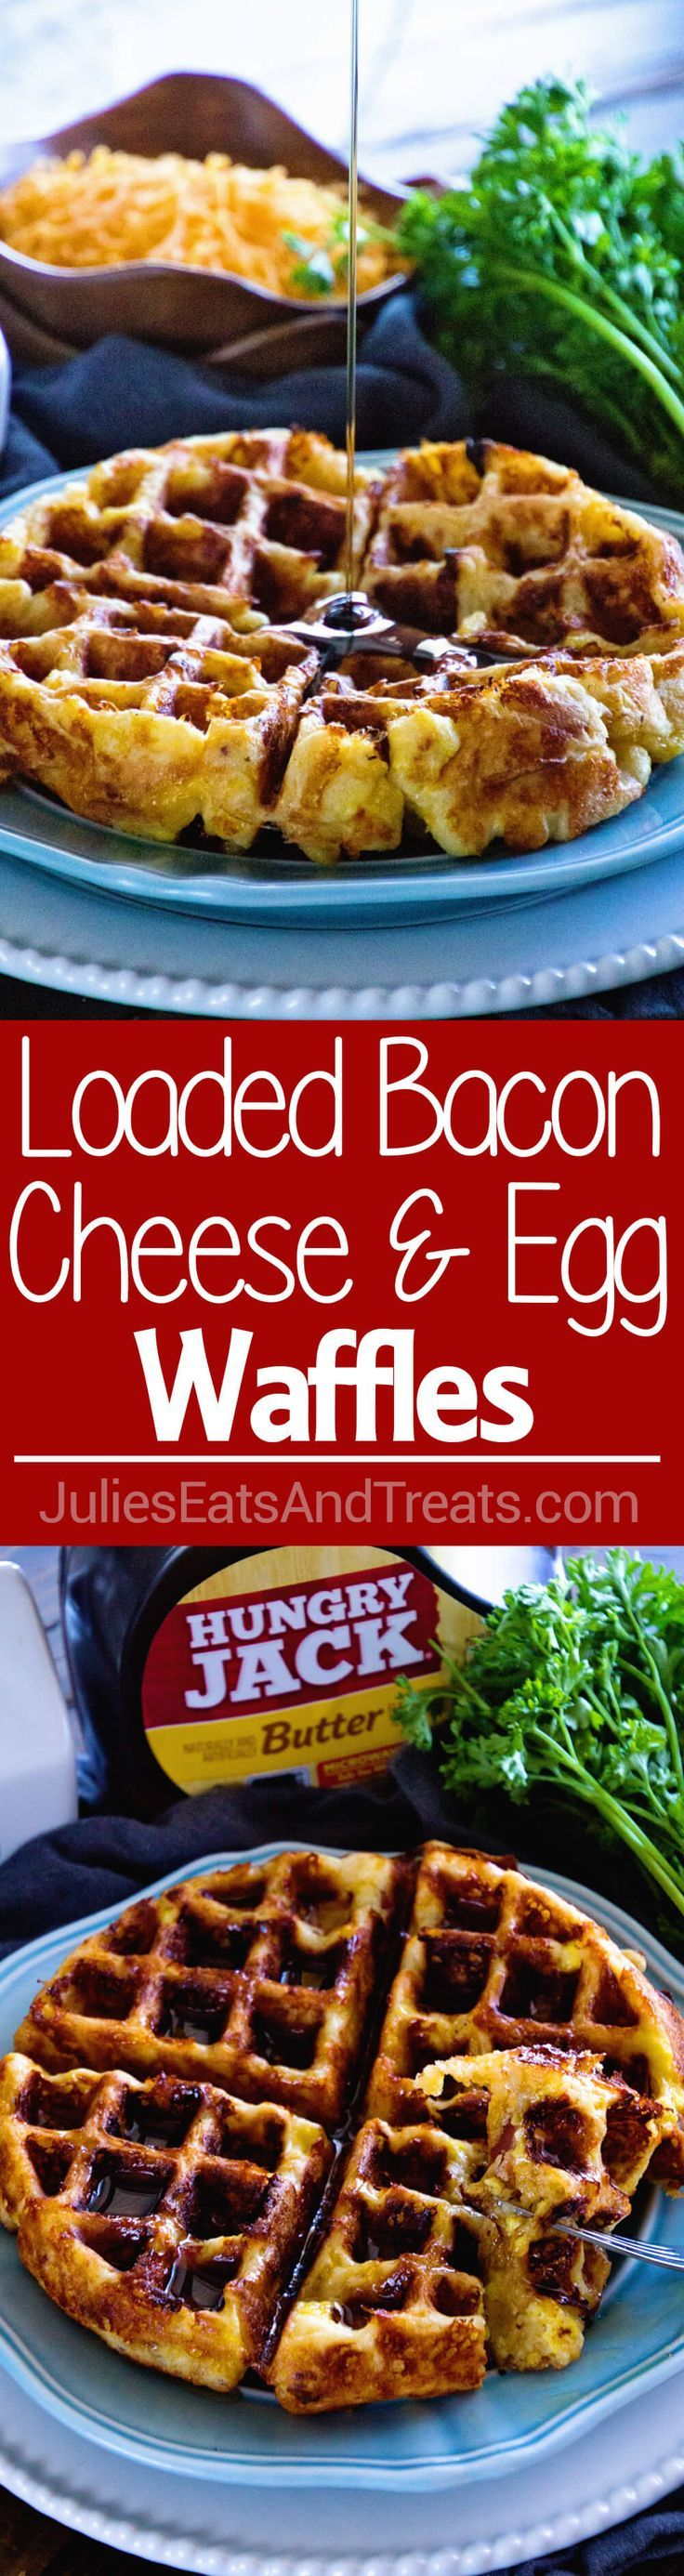 Loaded Egg Bacon Cheese Waffles ~ The Ultimate Sweet & Savory Waffle! Eat this Comfort Food for Breakfast or Dinner Whichever You'd Like! via @julieseats